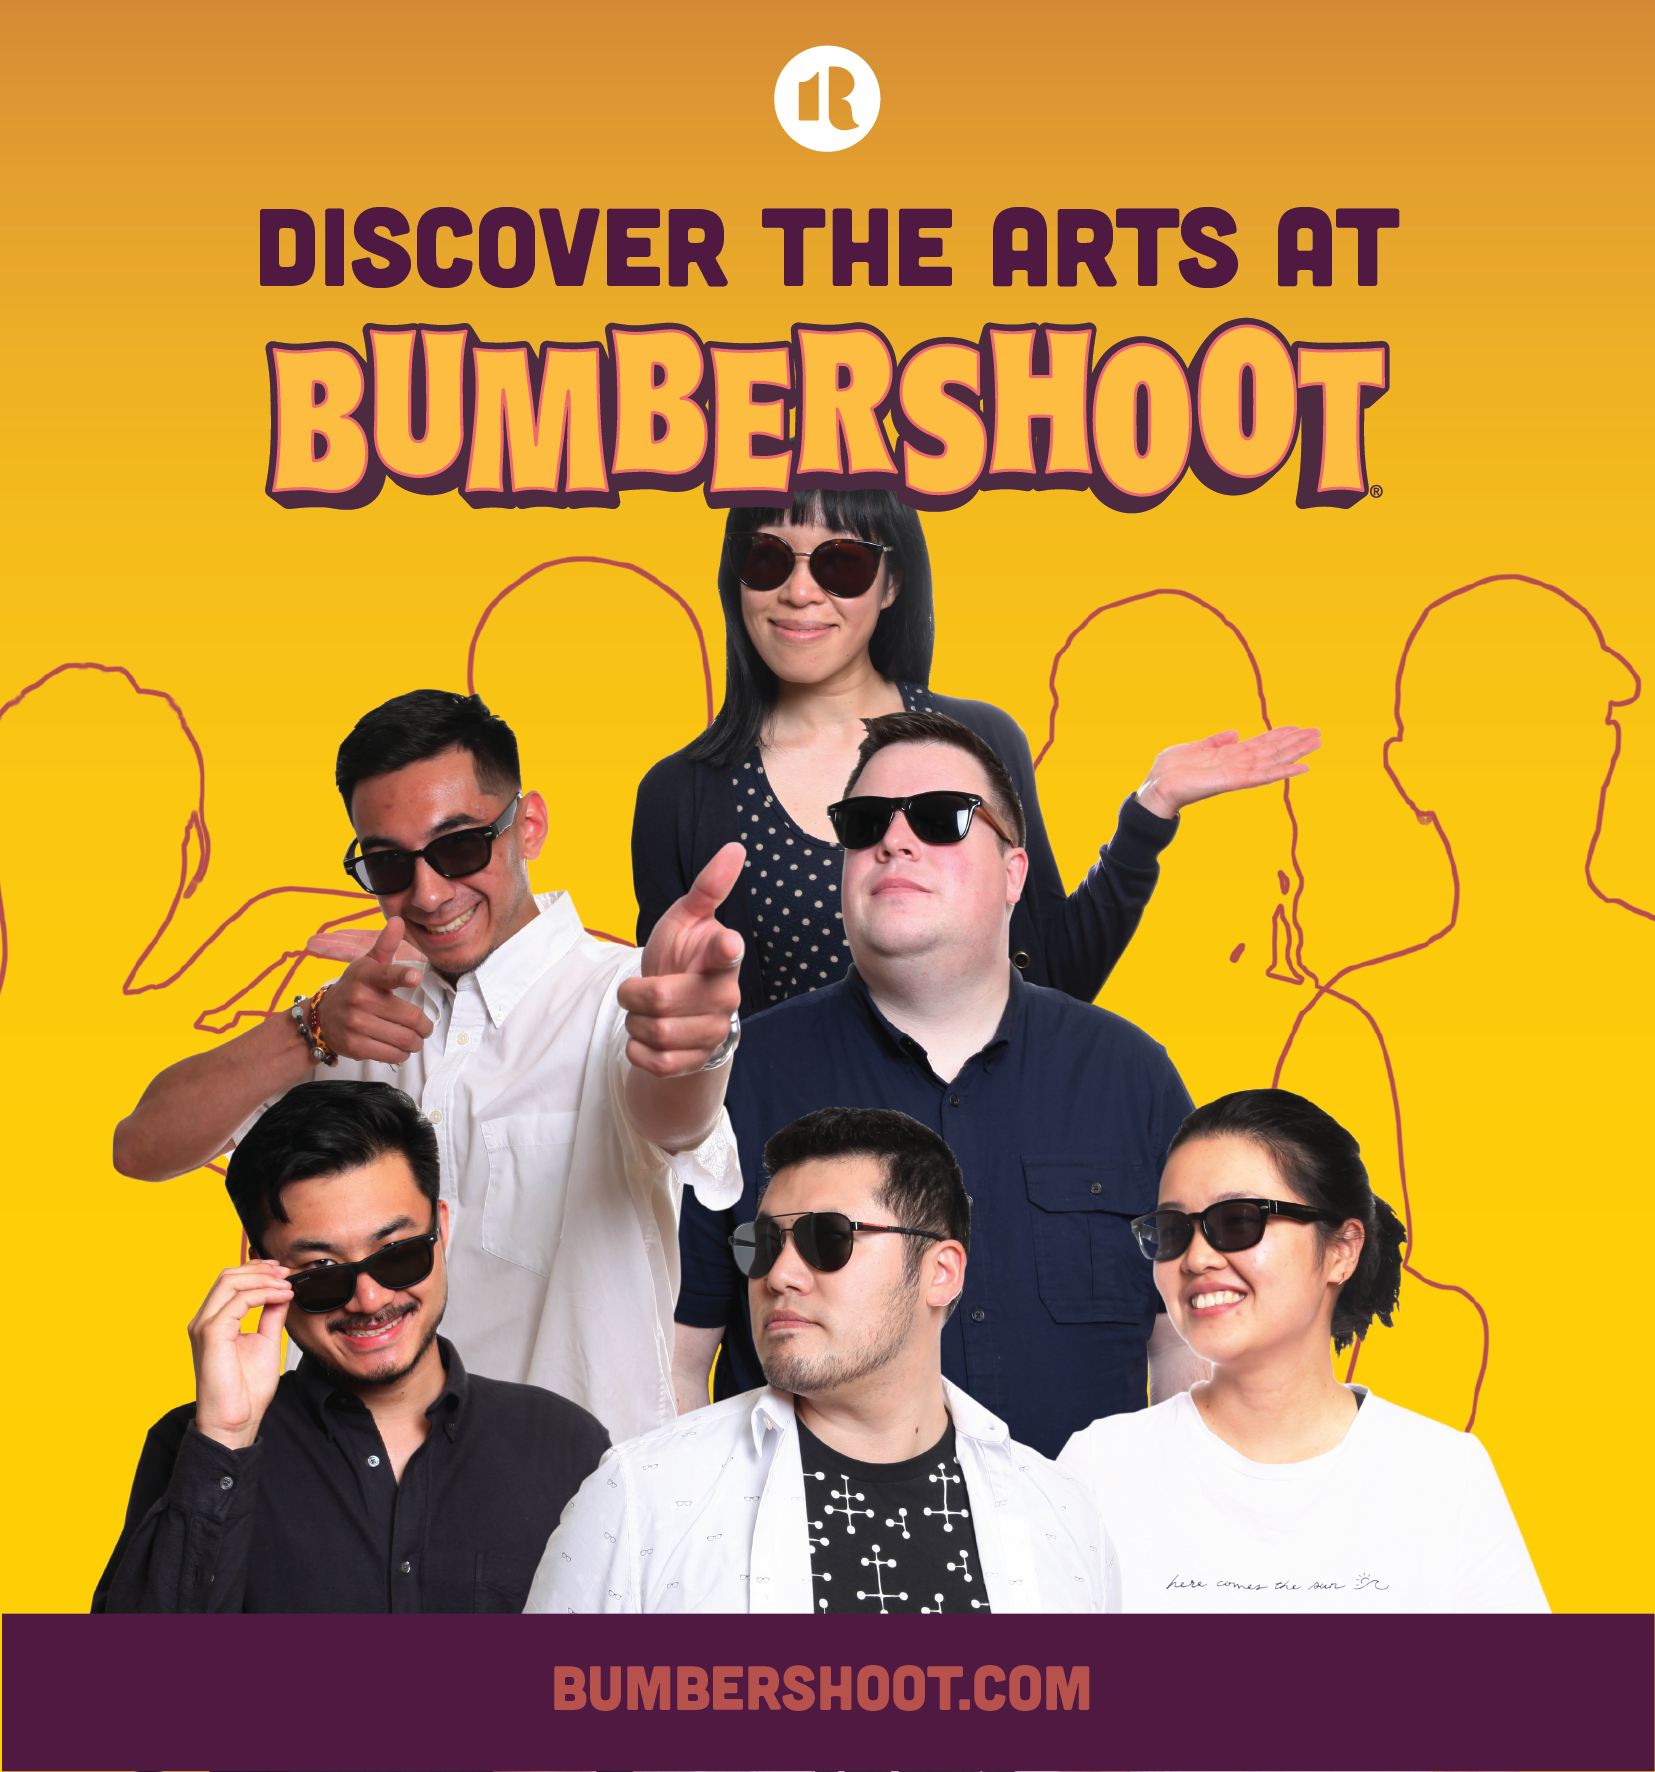 BumbershootArtists_2 Seattle Design Nerds.png